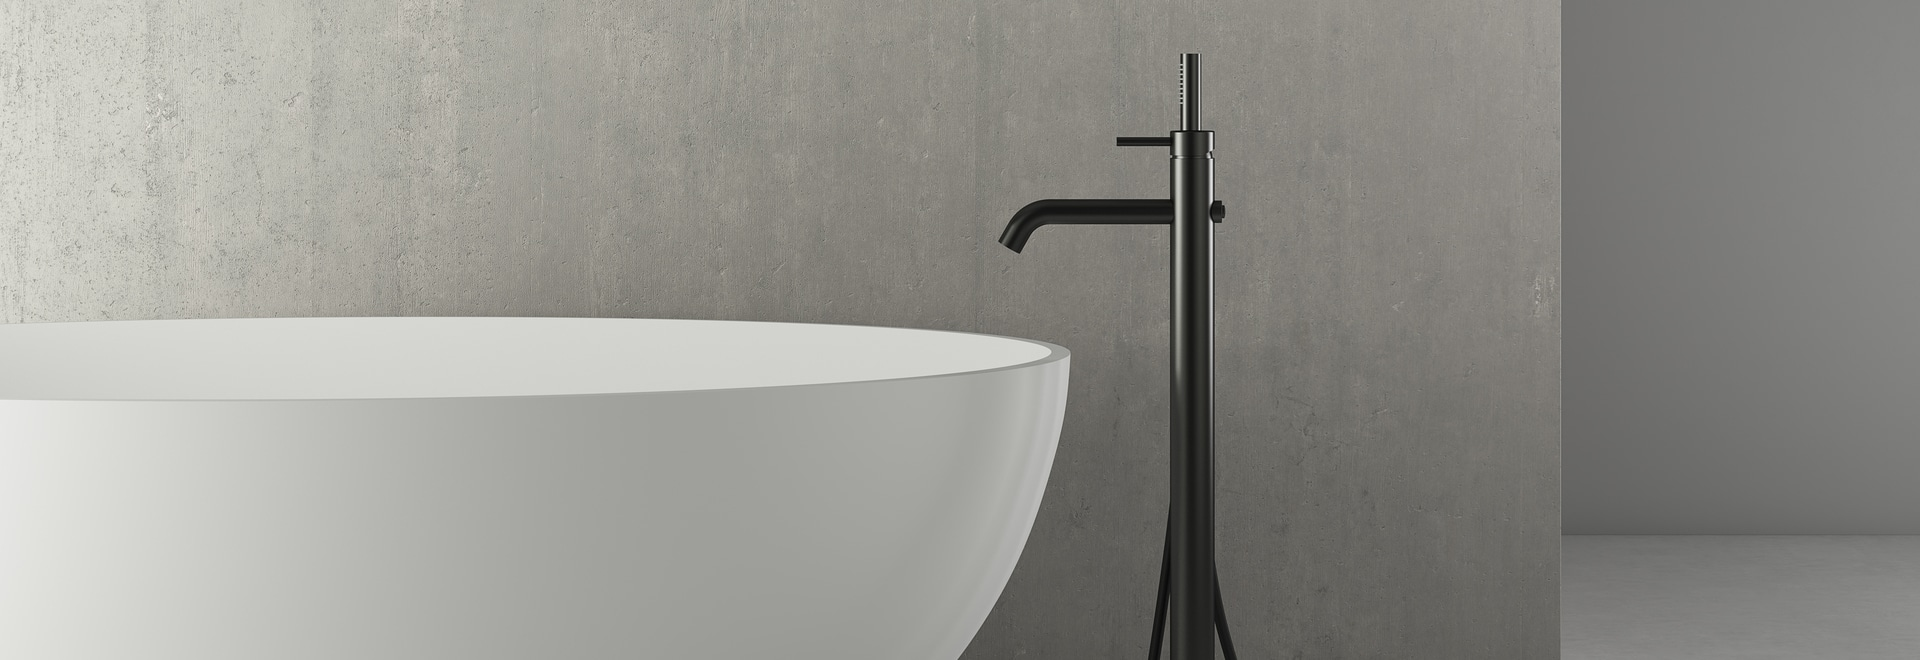 NERO by Vallone ®: New tap collection represents subtle elegance dressed in black